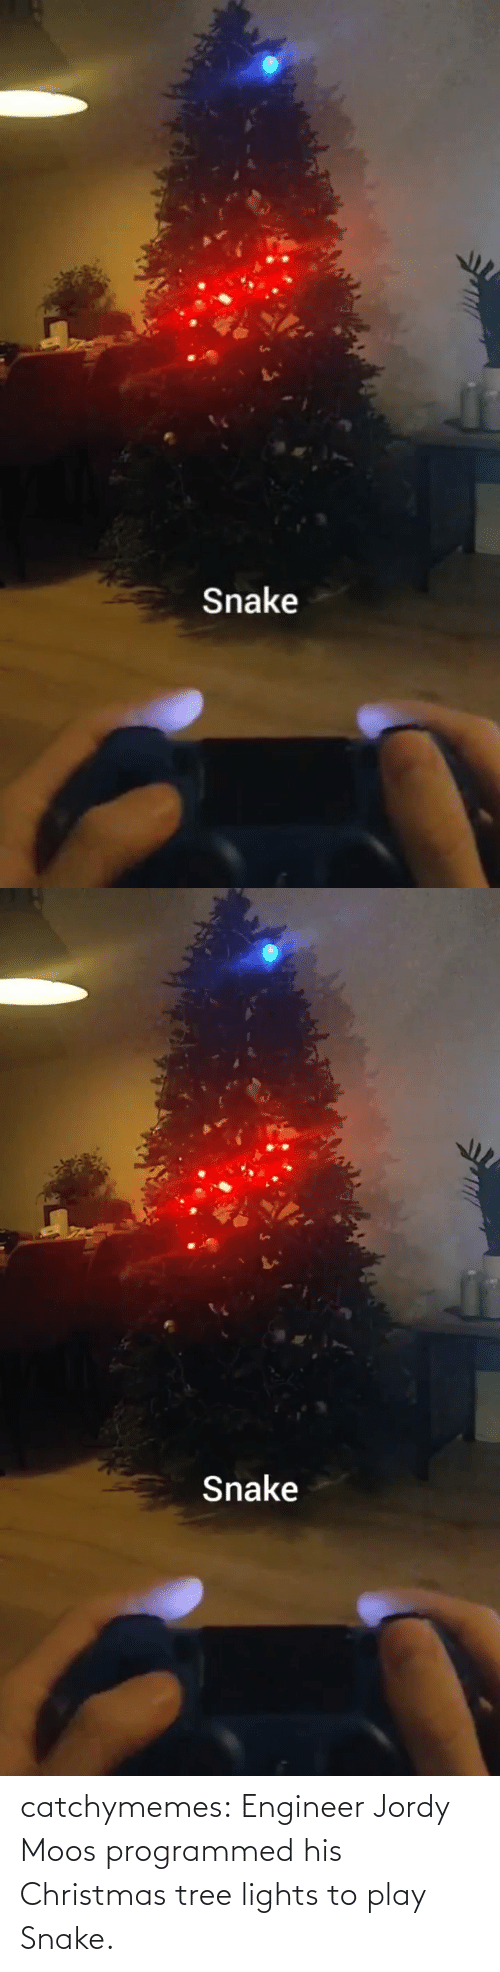 Christmas Tree: Snake   Snake catchymemes:  Engineer Jordy Moos programmed his Christmas tree lights to play Snake.